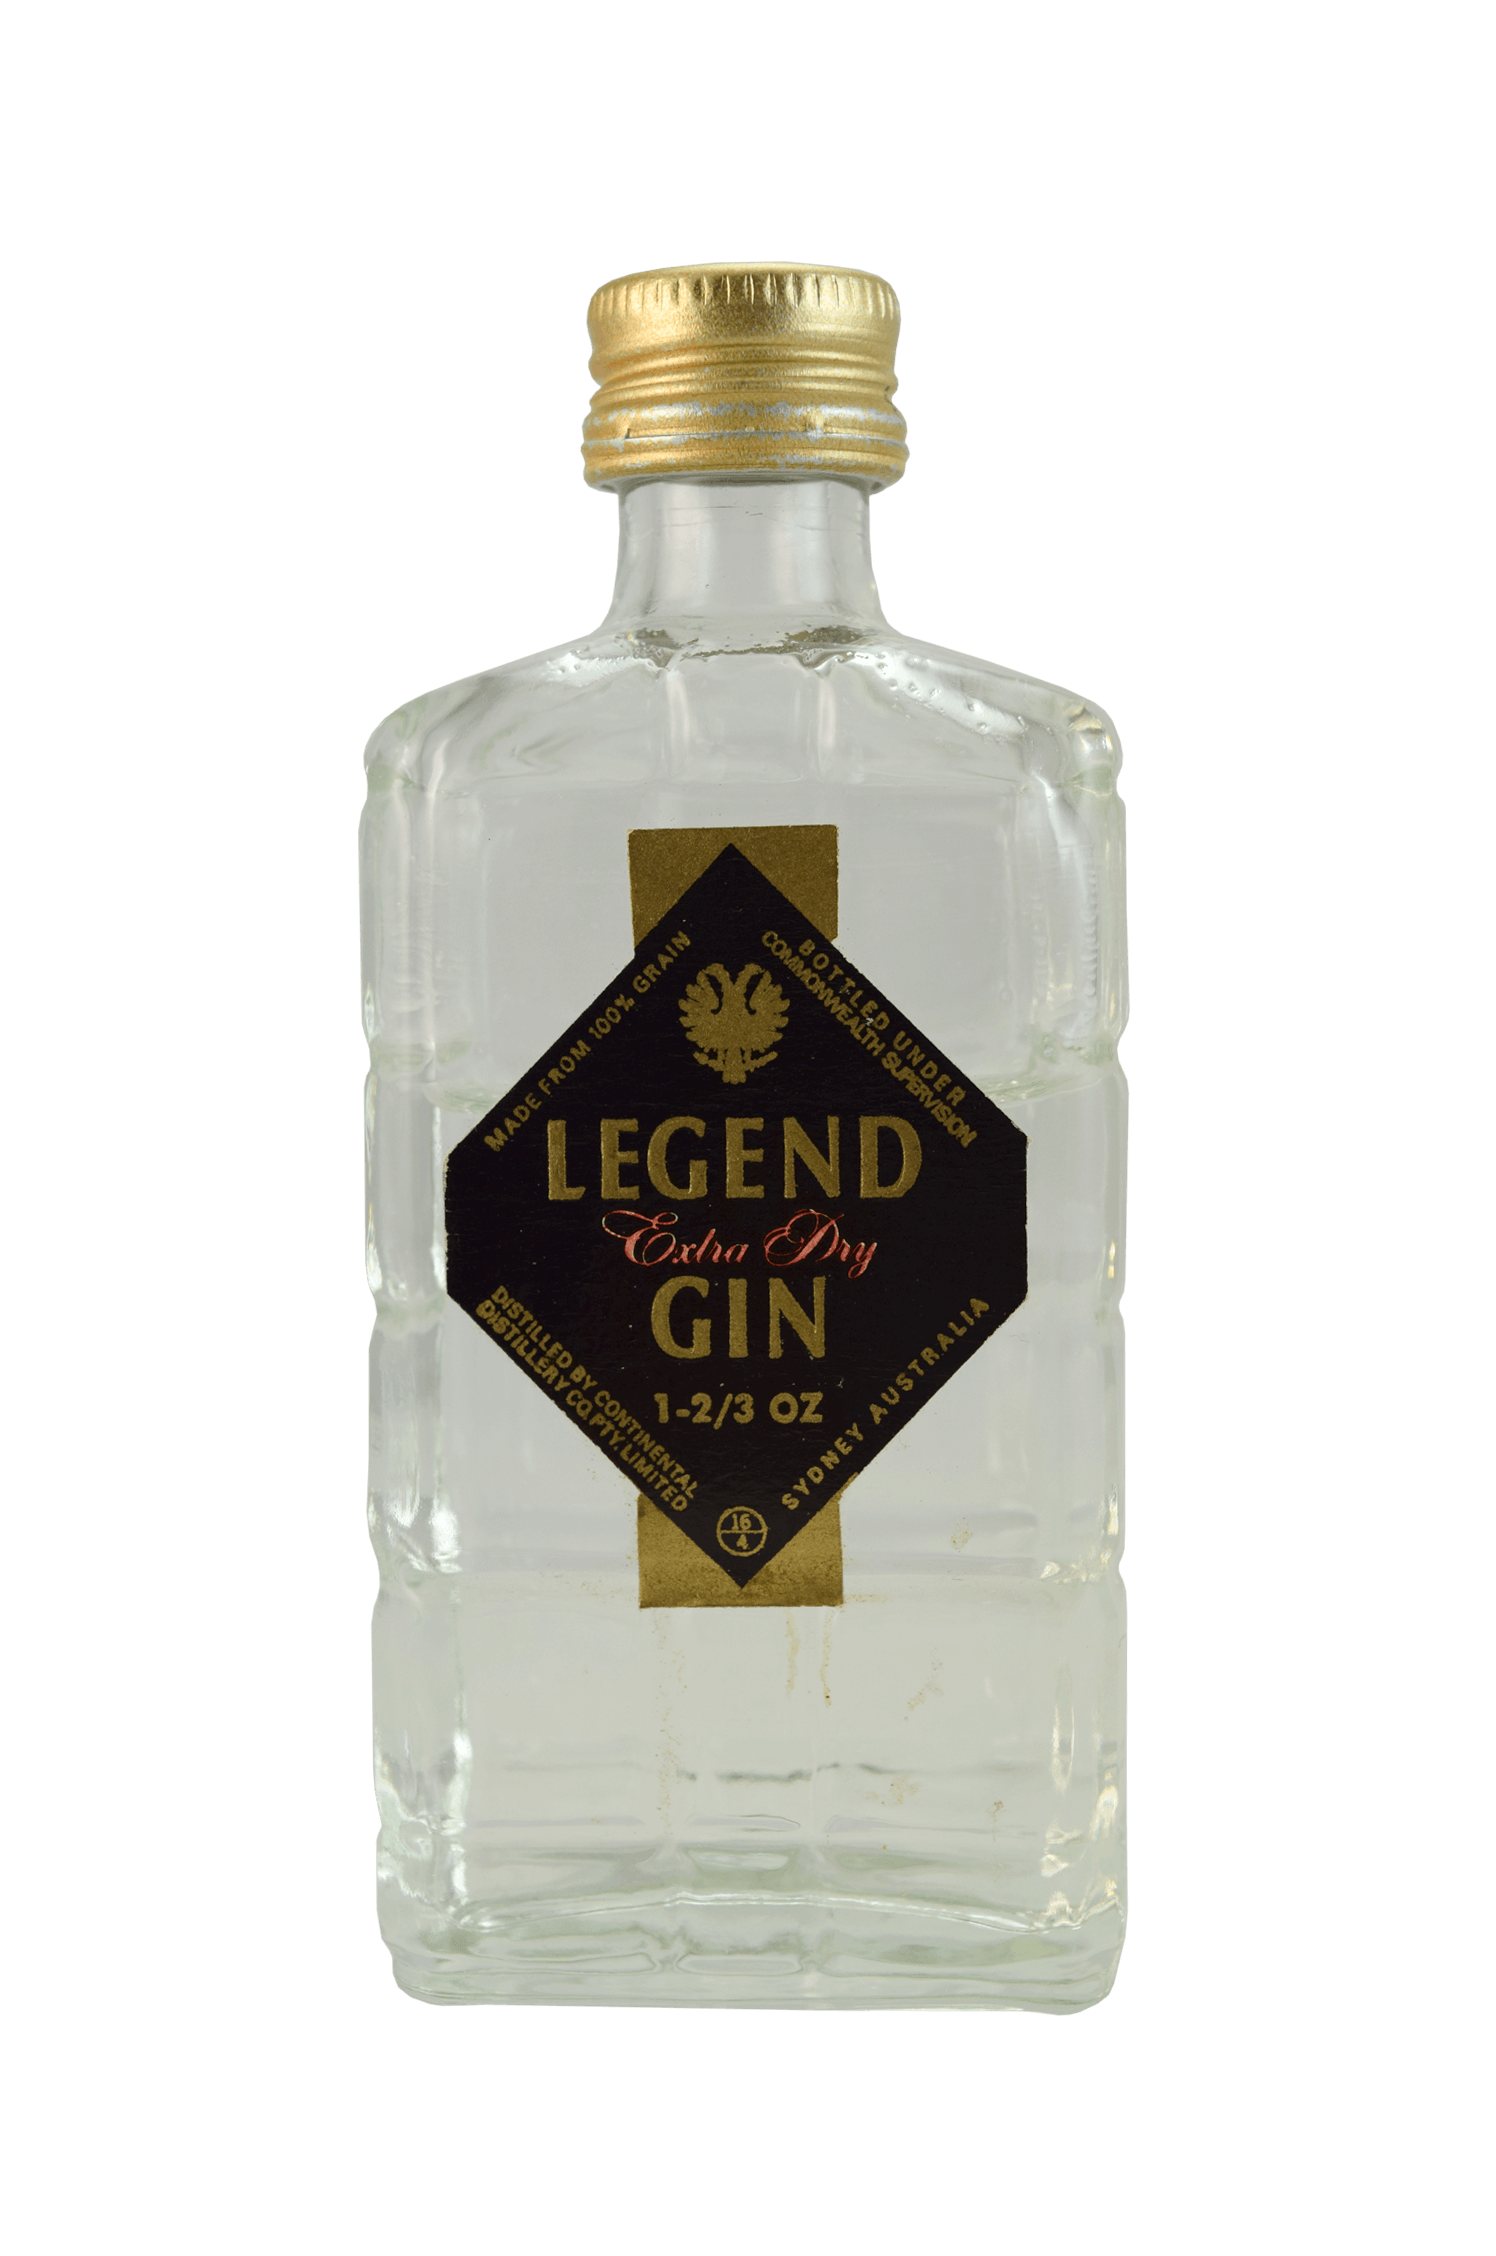 Legend Extra Dry Gin